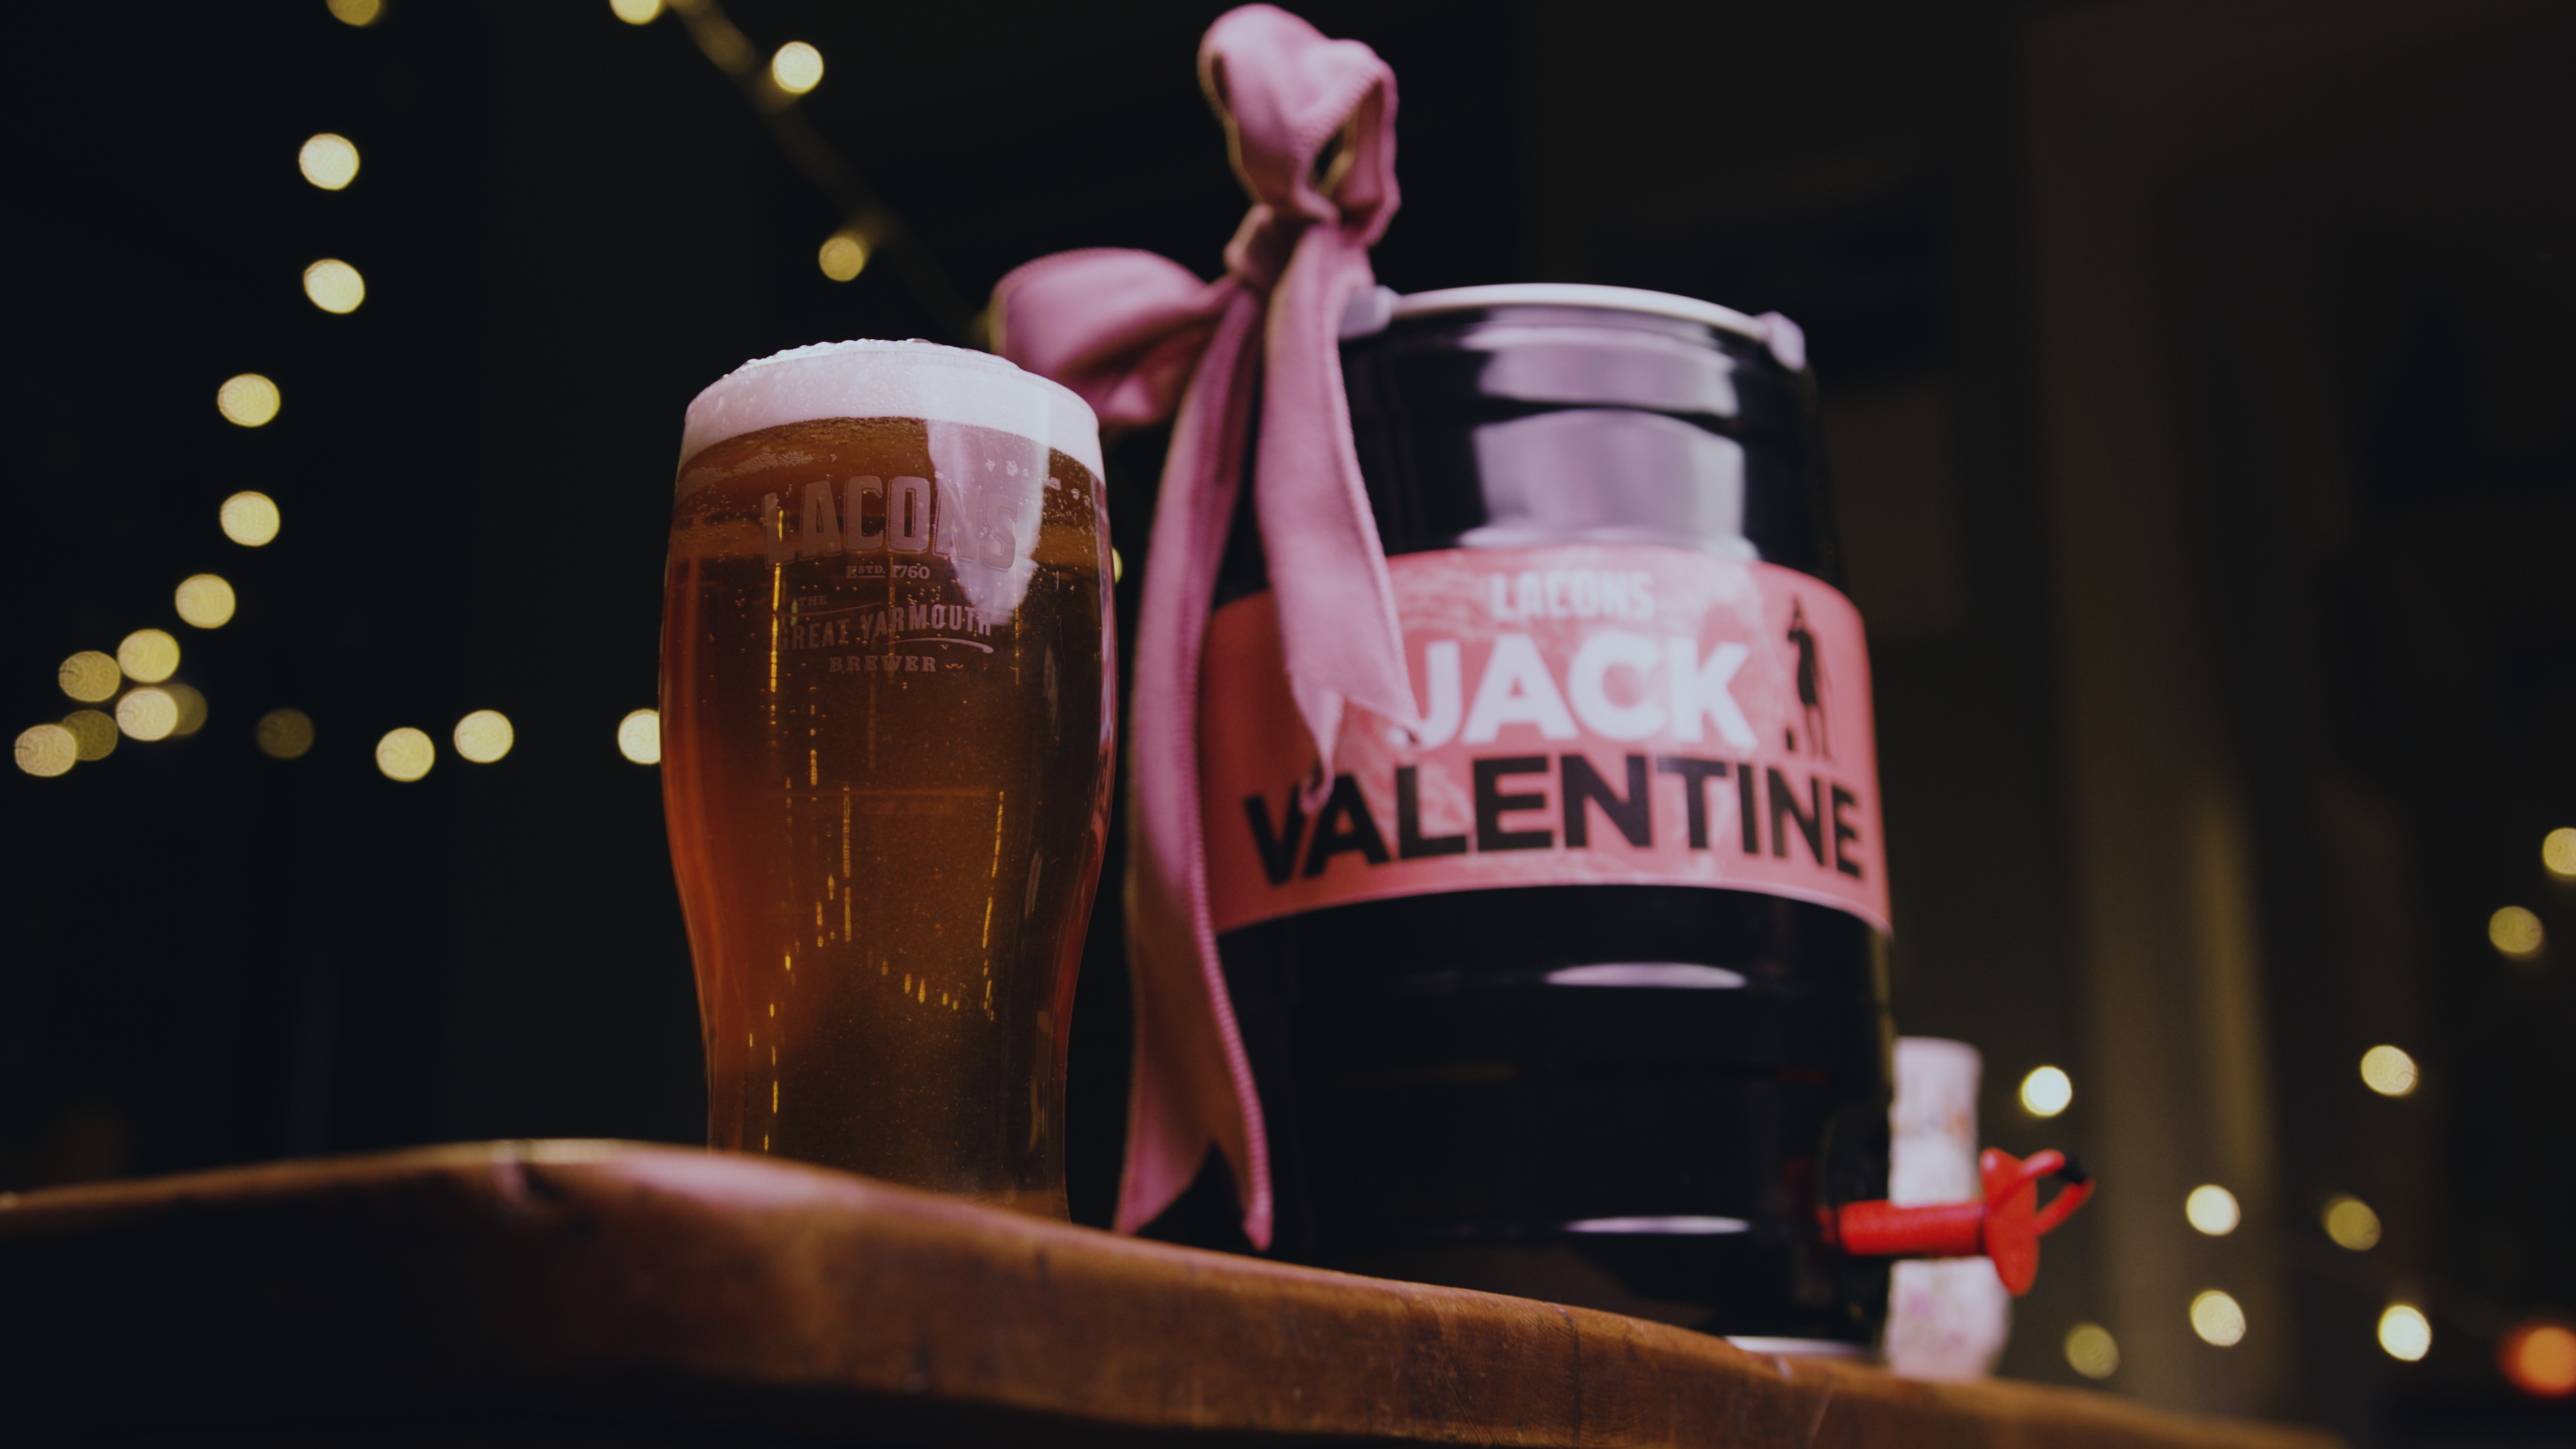 Jack Valentine mini cask from Lacons